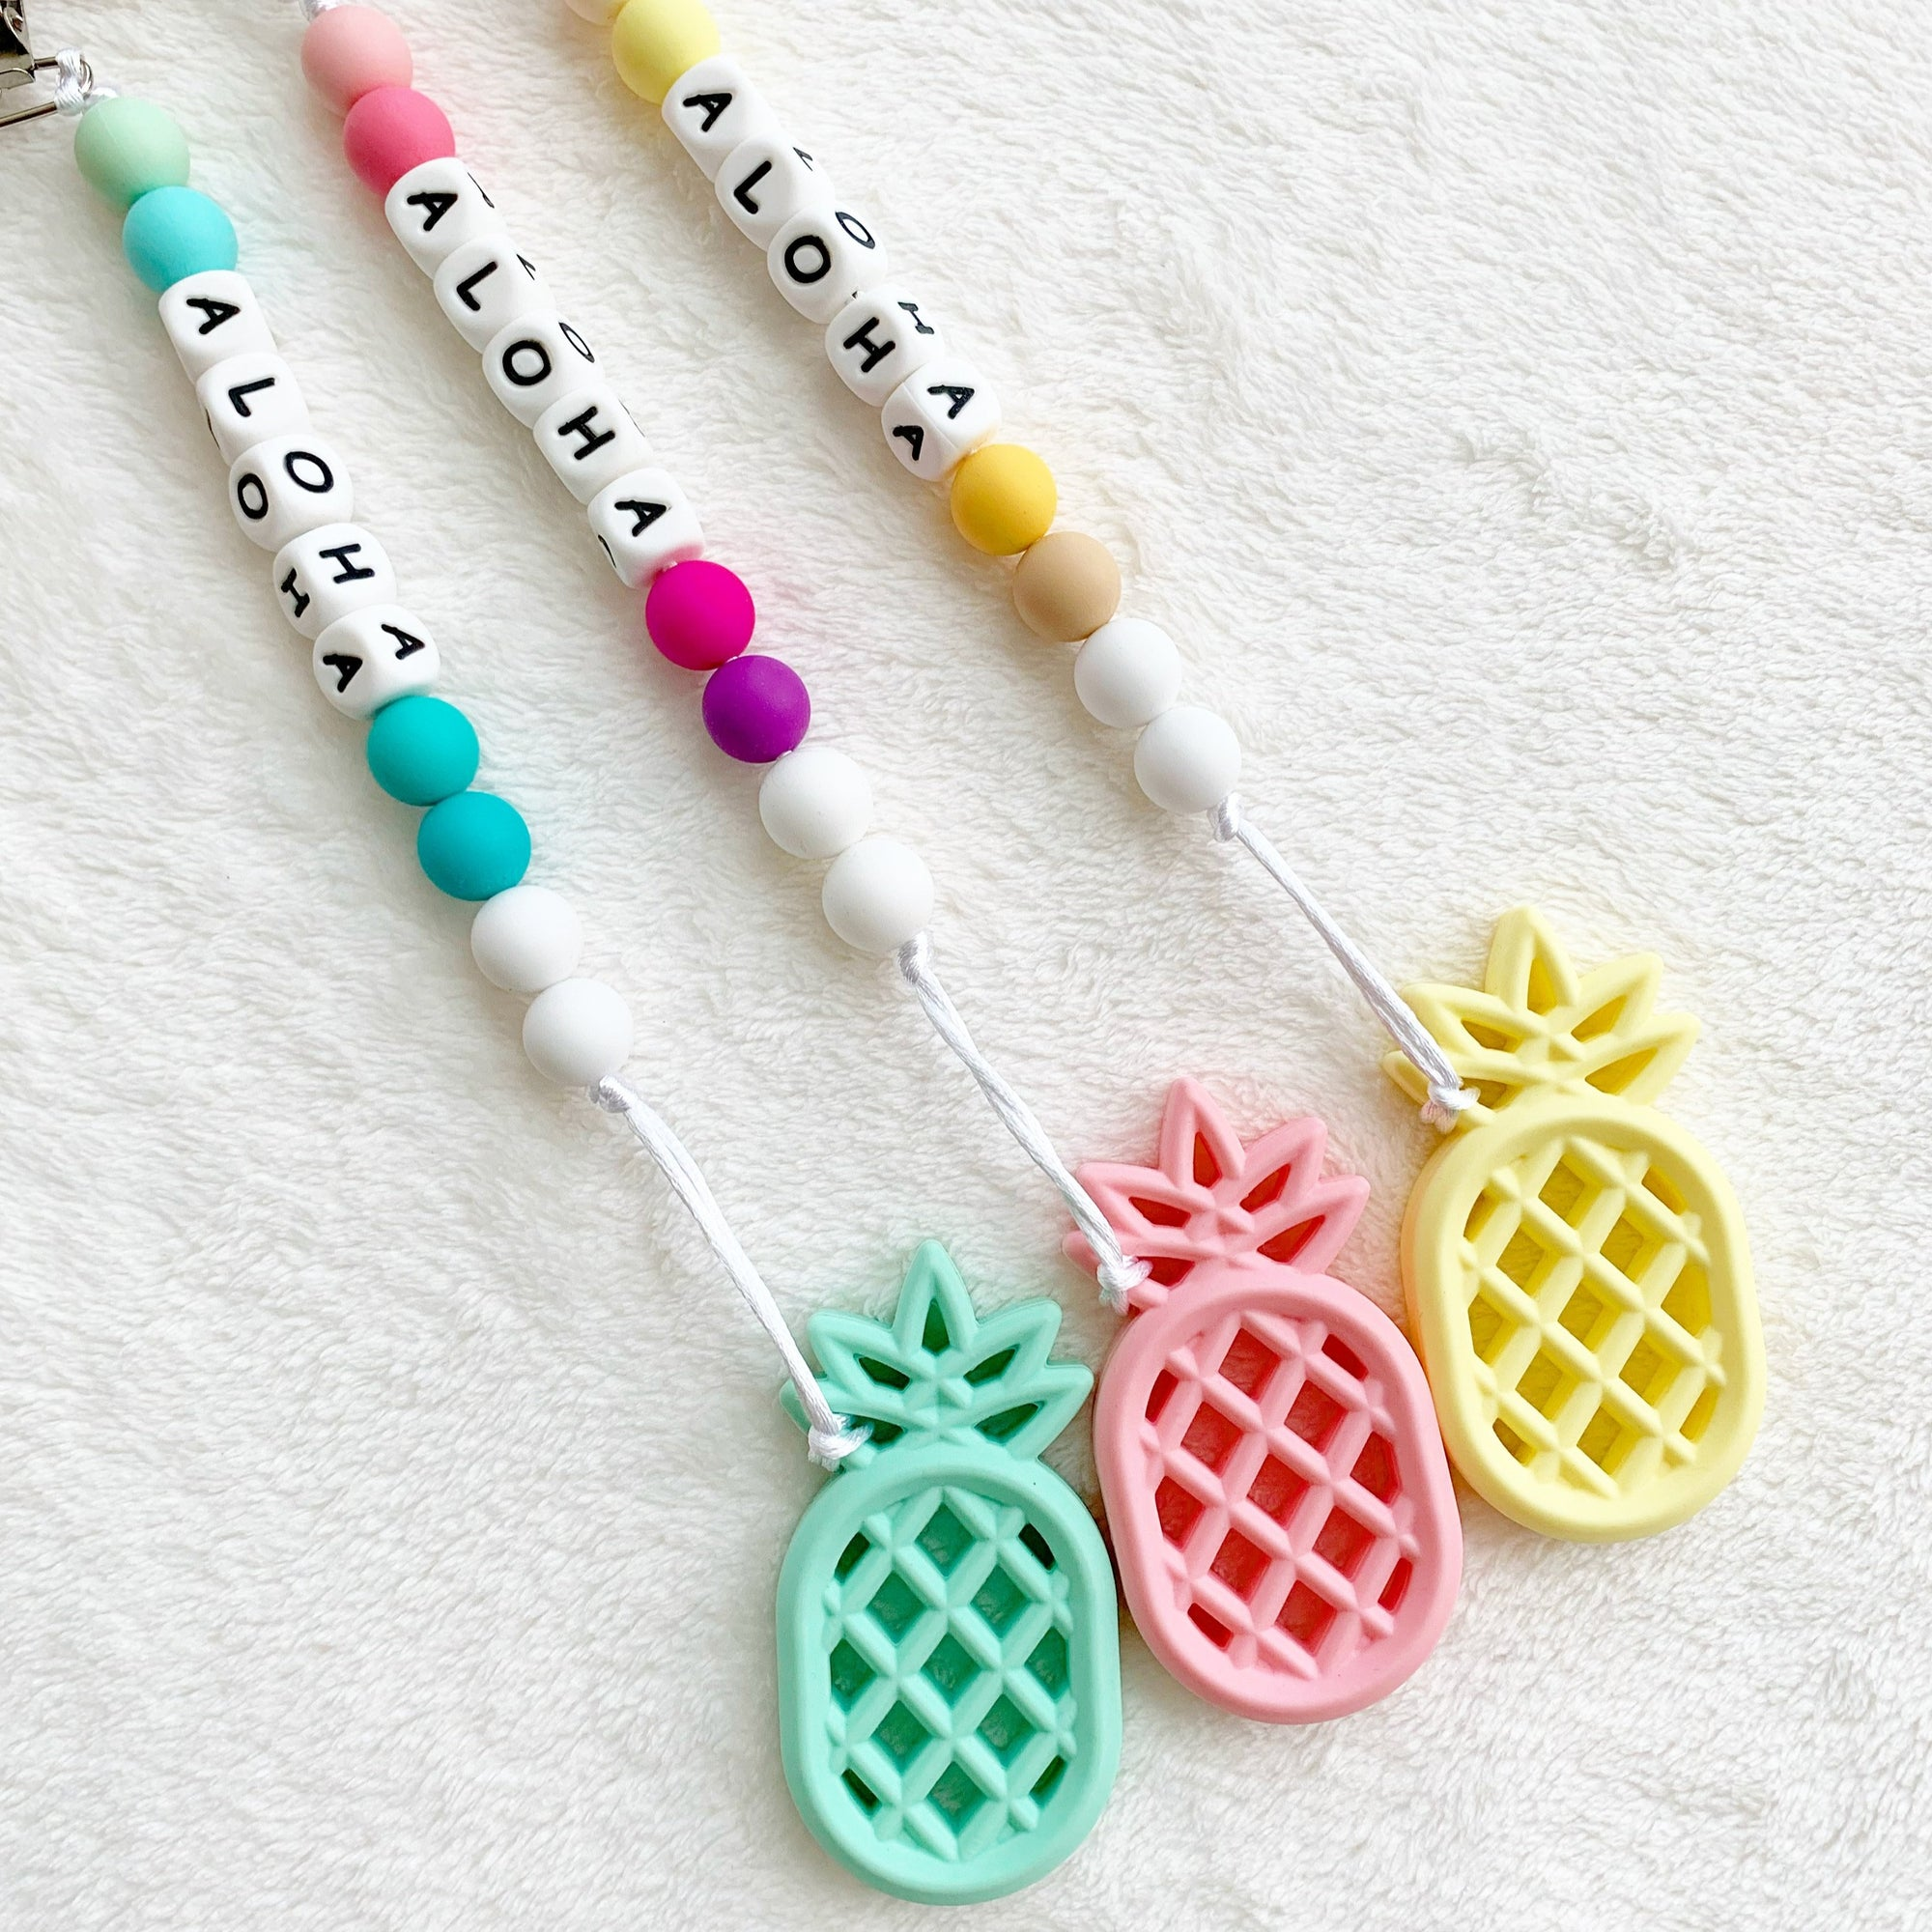 Kids in Paradise: Aloha Pineapple Teethers